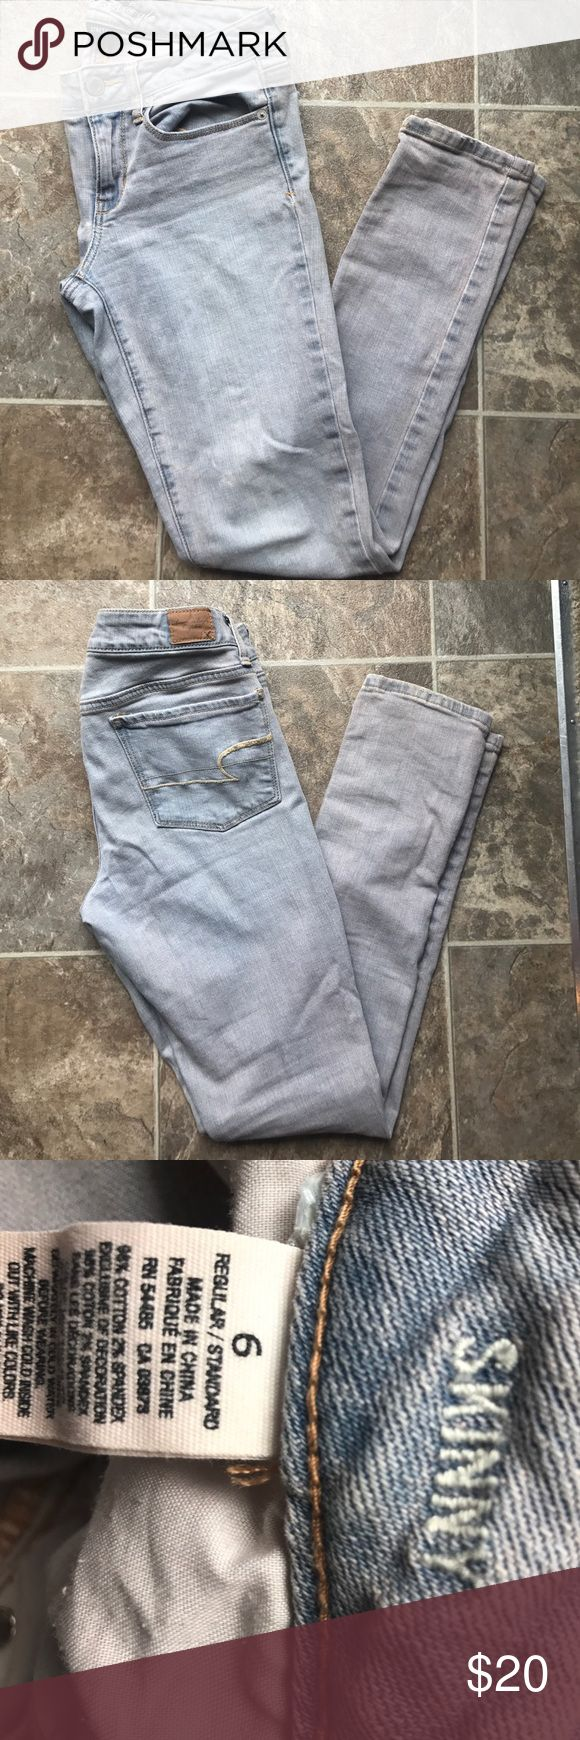 Super light wash skinny jeans size 6 American Eagle super light wash skinny jeans size 8 regular; super stretch; like new American Eagle Outfitters Jeans Skinny